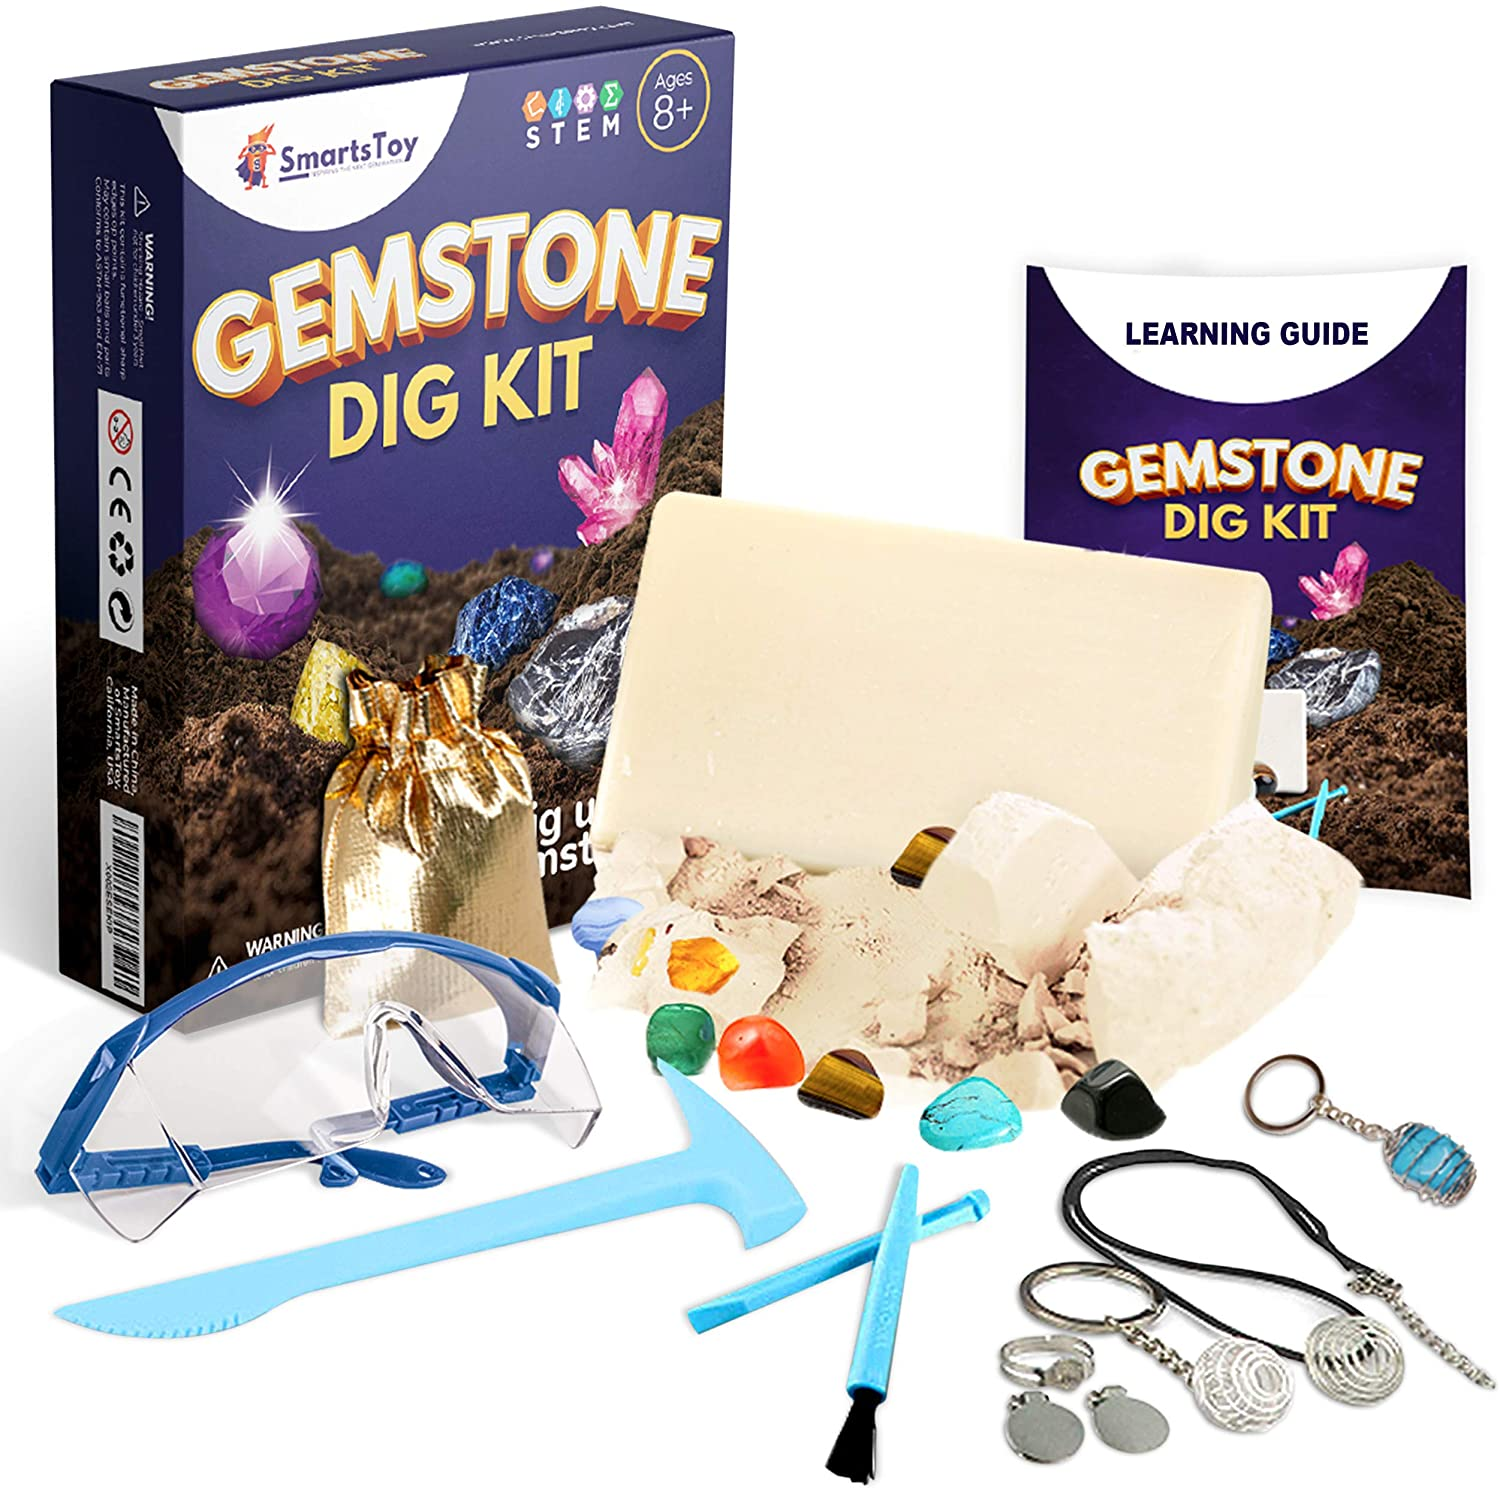 Gem dig kit with 12 Real Gemstones for Kids - Rock Collection Science kit with Excavation Tools, Goggles & Storage Bag, Keychain - Archeology Stem Activities for Kids Ages 6 7 8 9 10